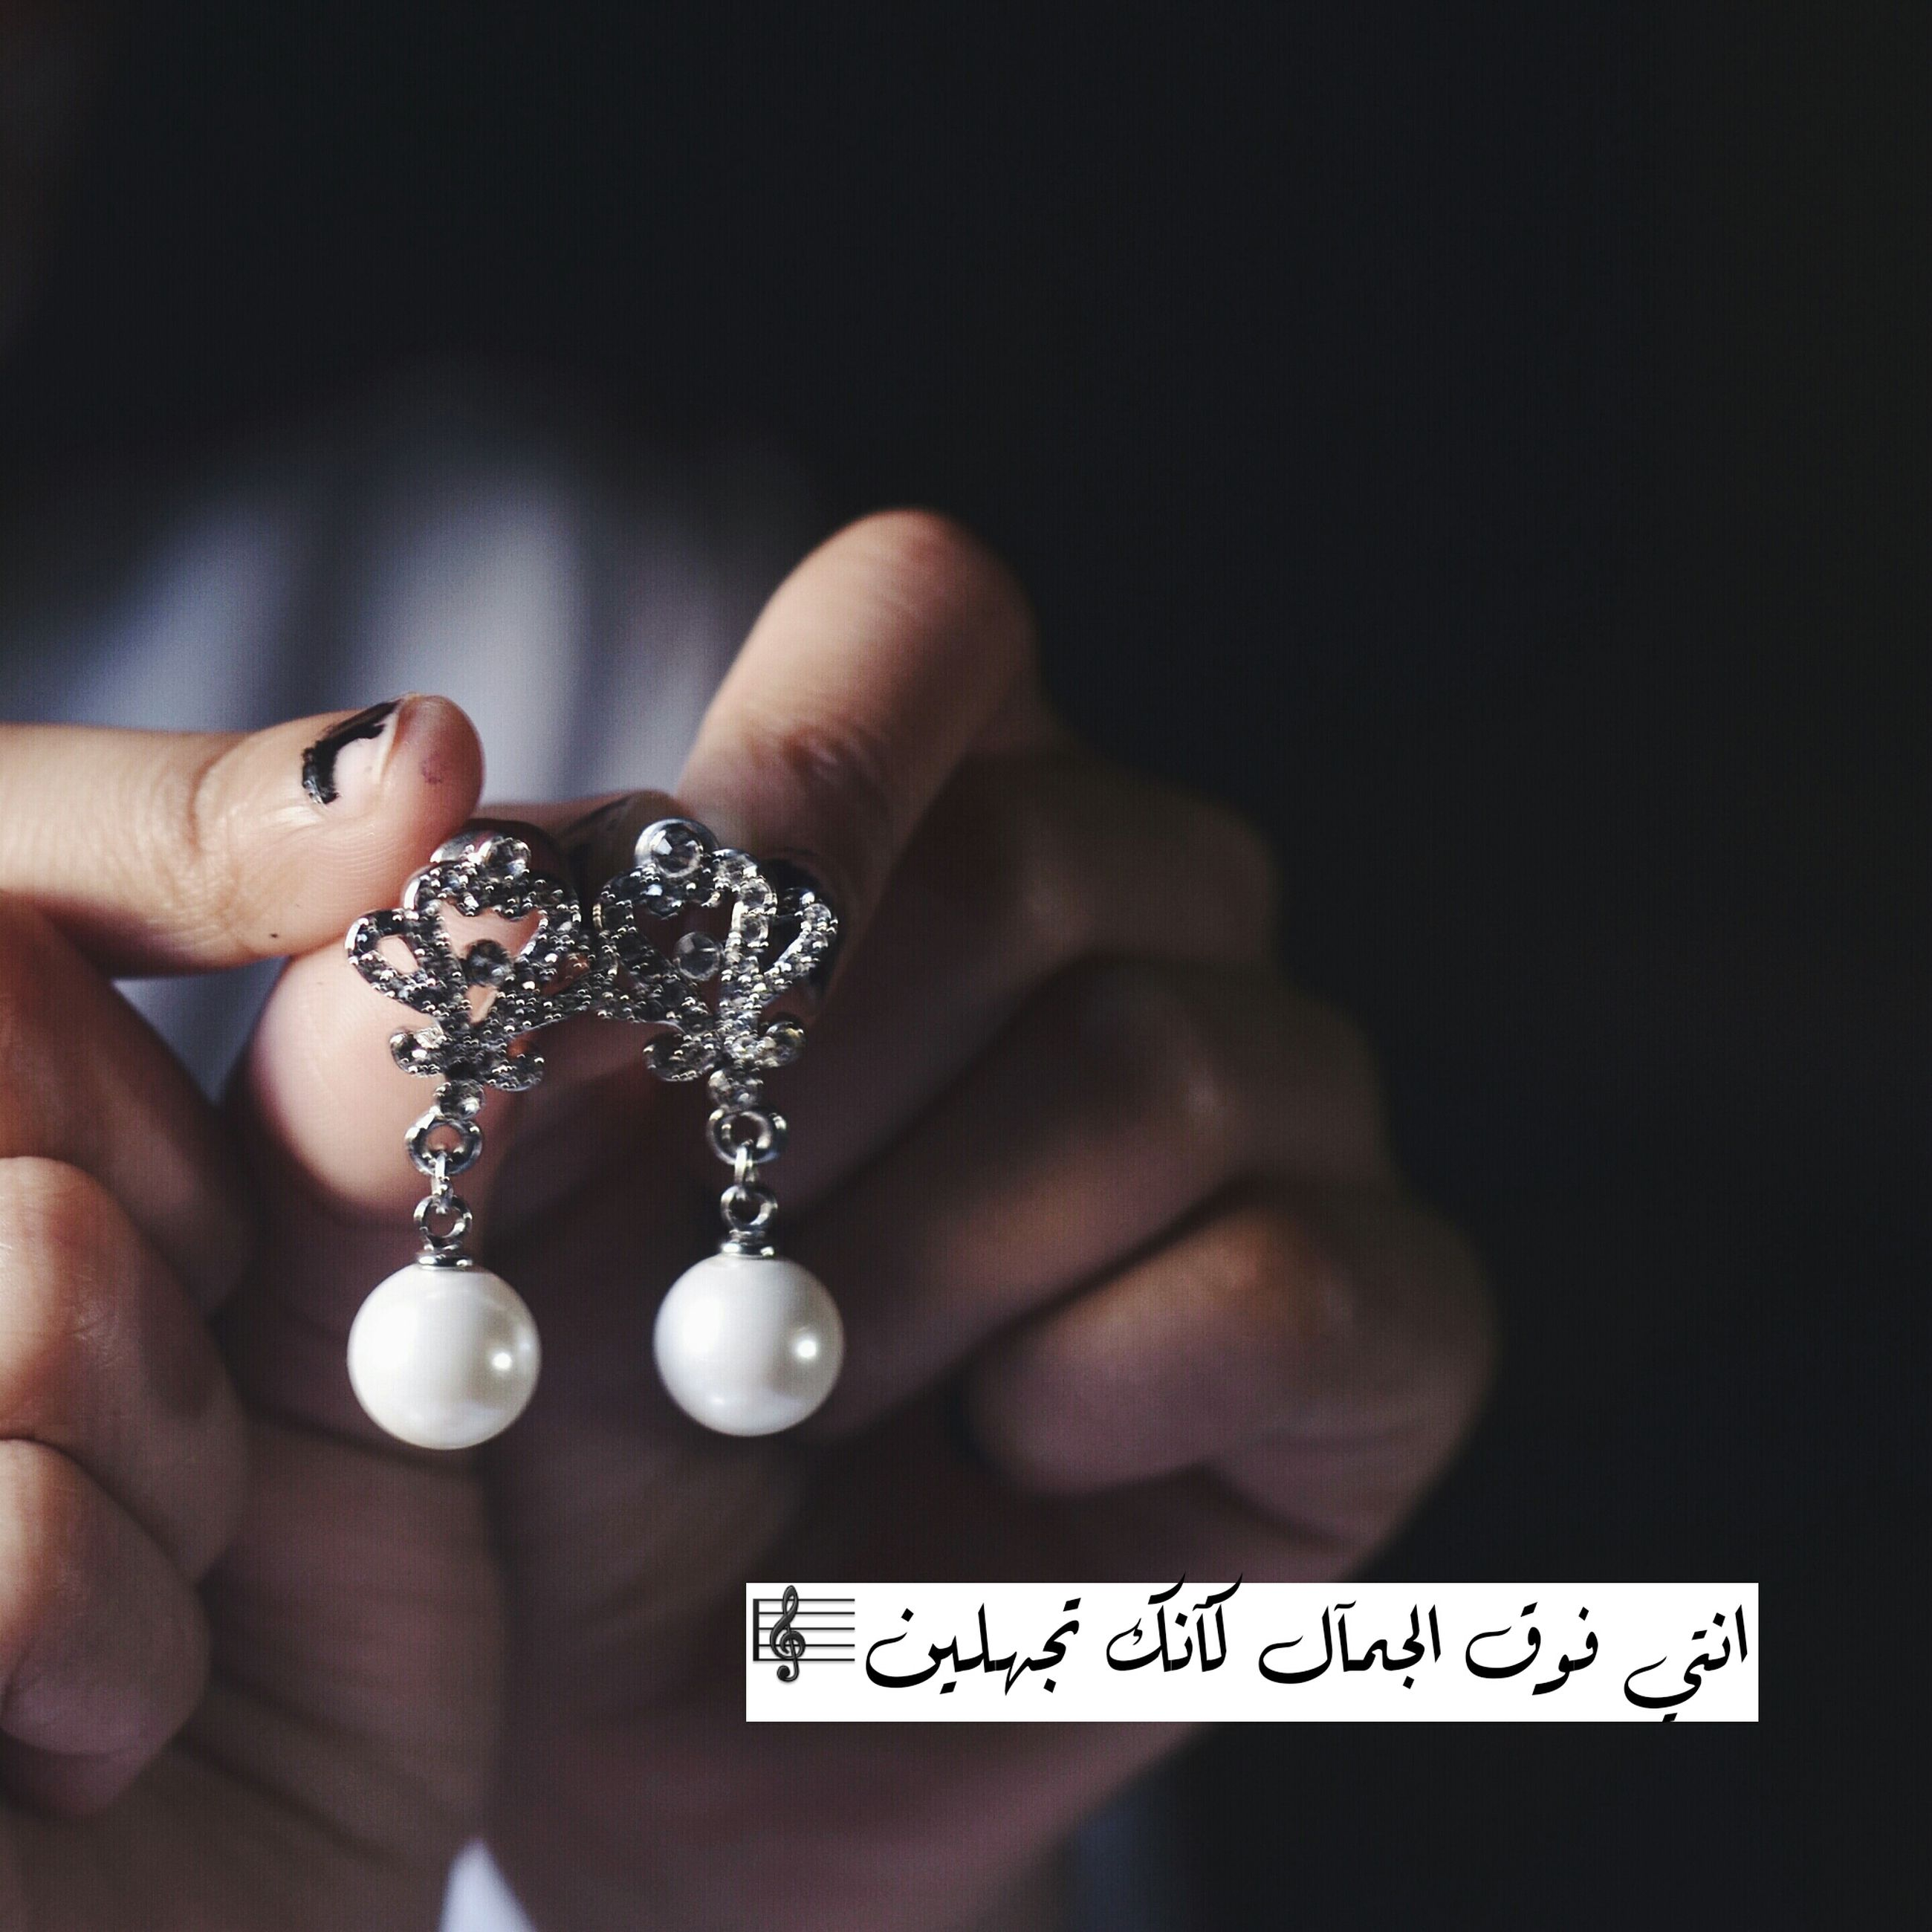 person, human finger, holding, part of, cropped, indoors, close-up, communication, unrecognizable person, focus on foreground, lifestyles, showing, text, ring, western script, studio shot